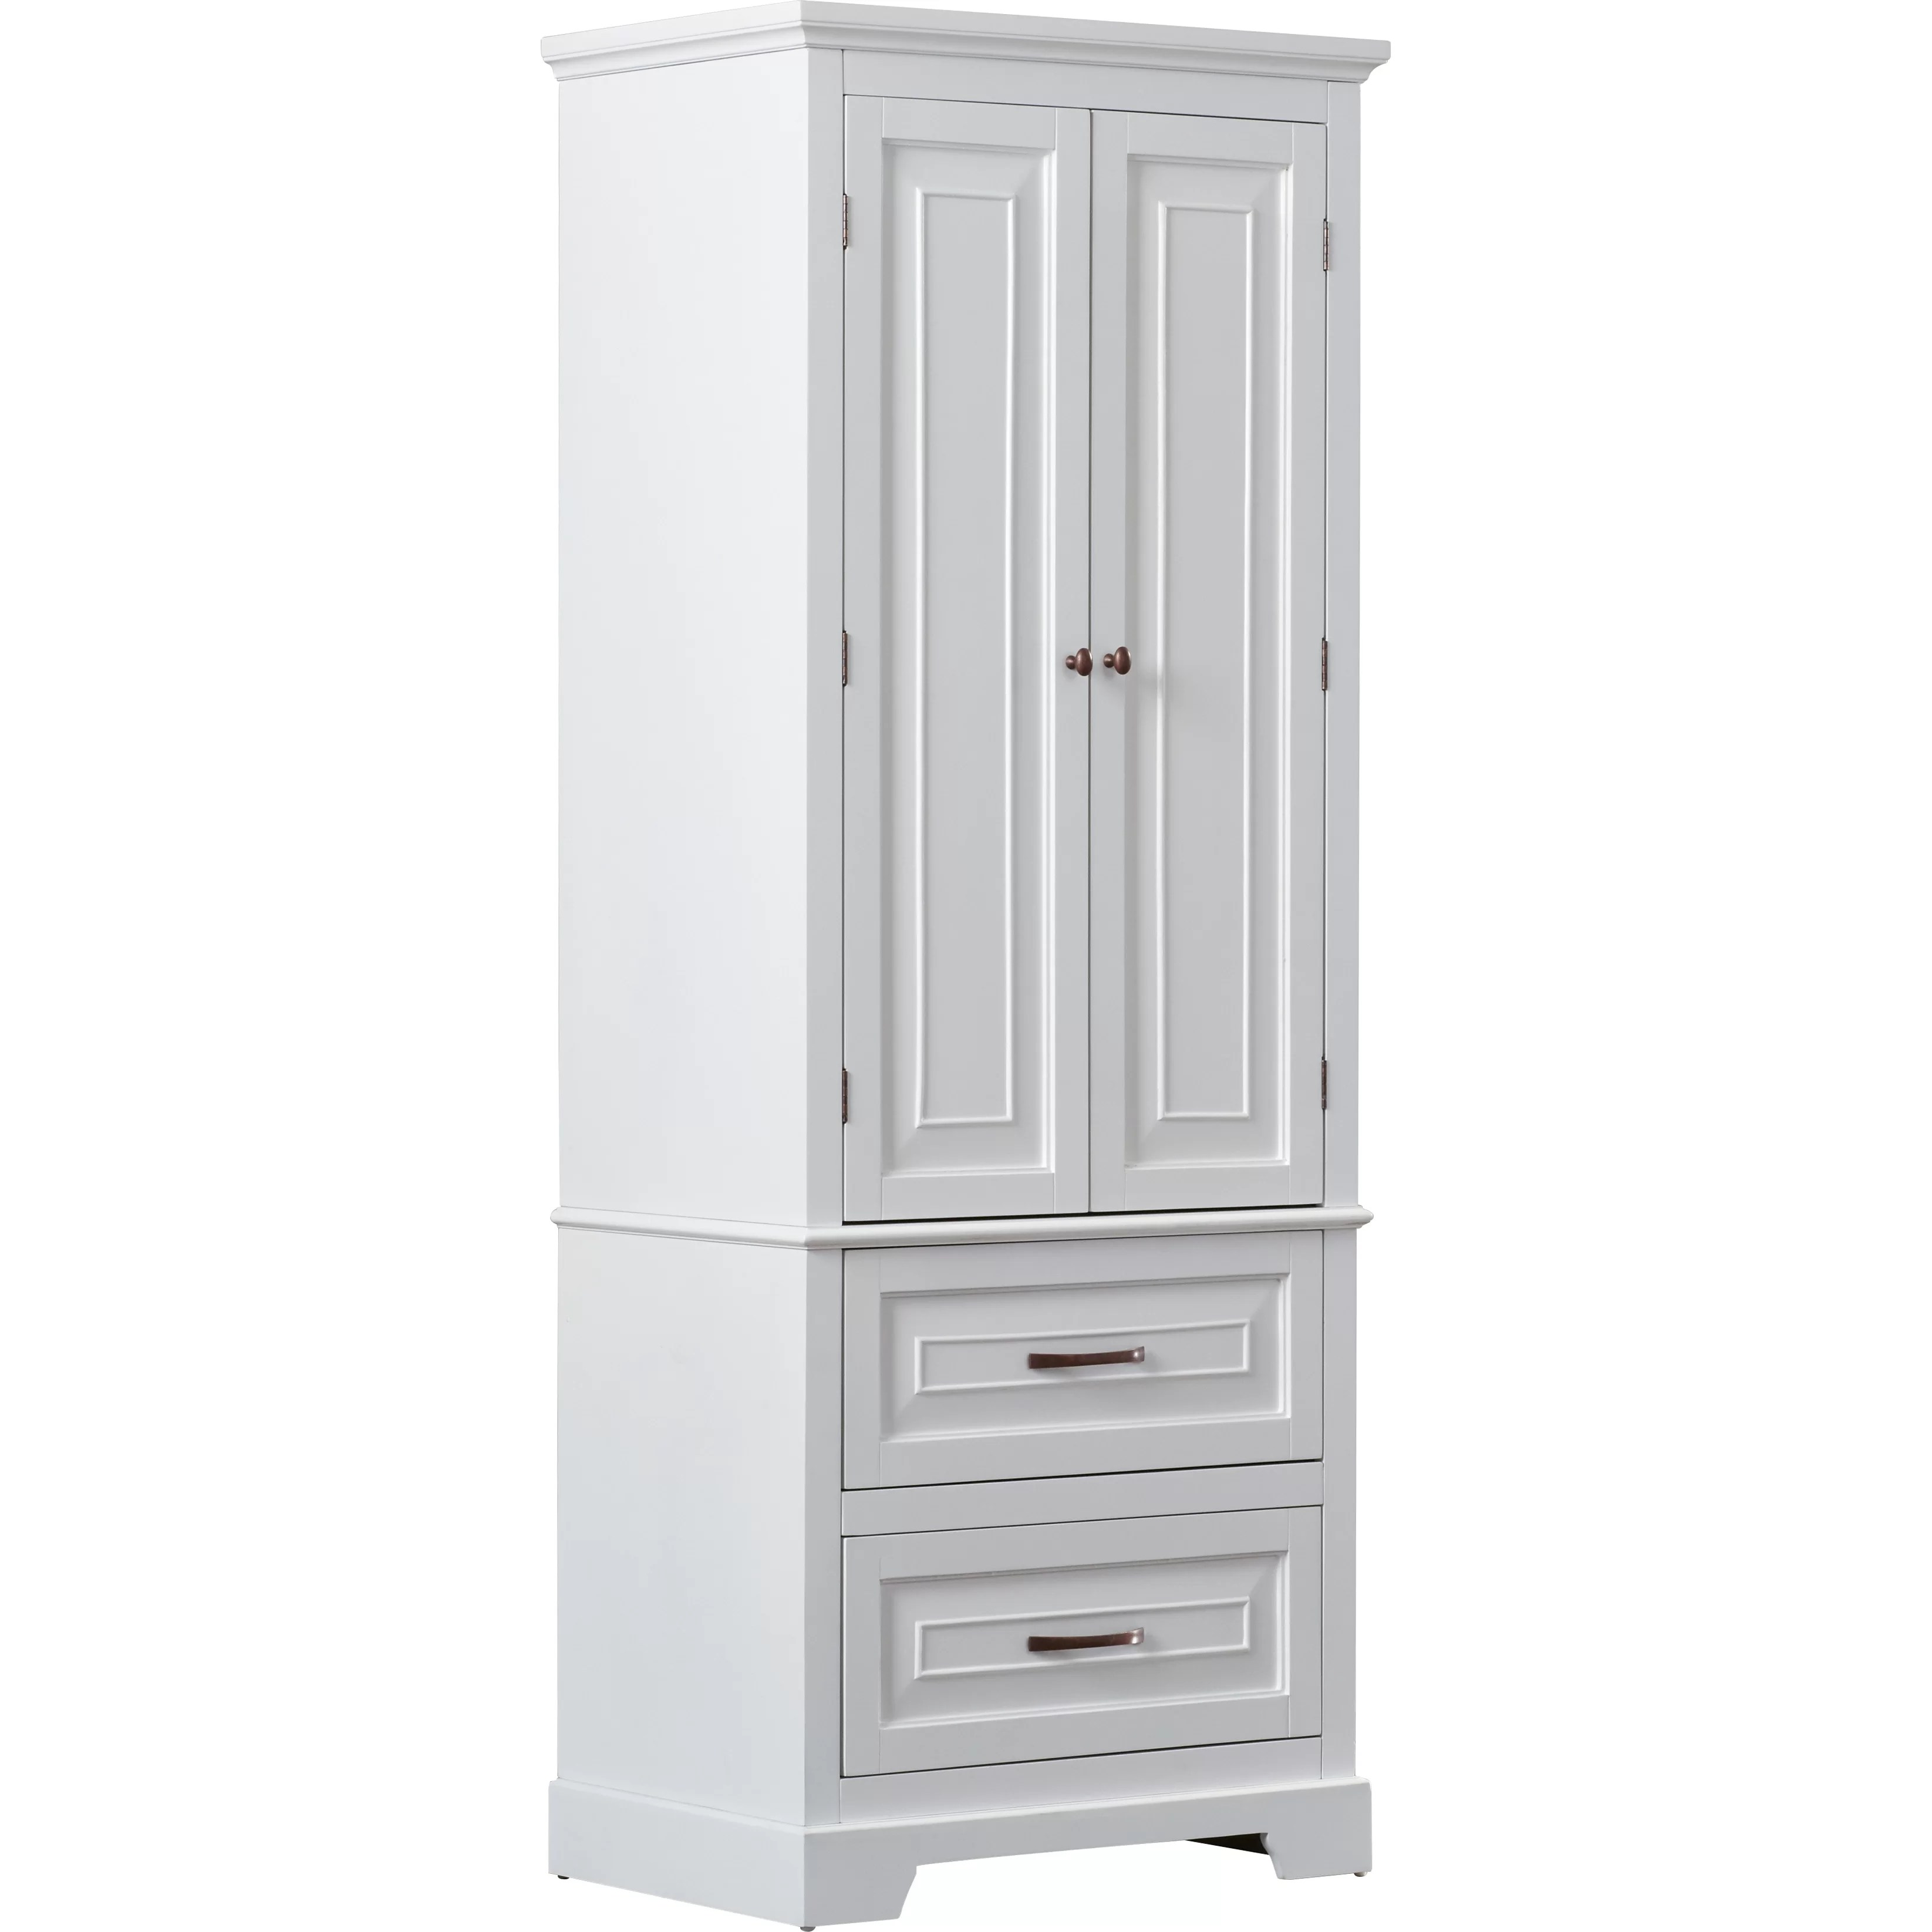 Alcott Hill Prater 24 x 62 Free Standing Cabinet